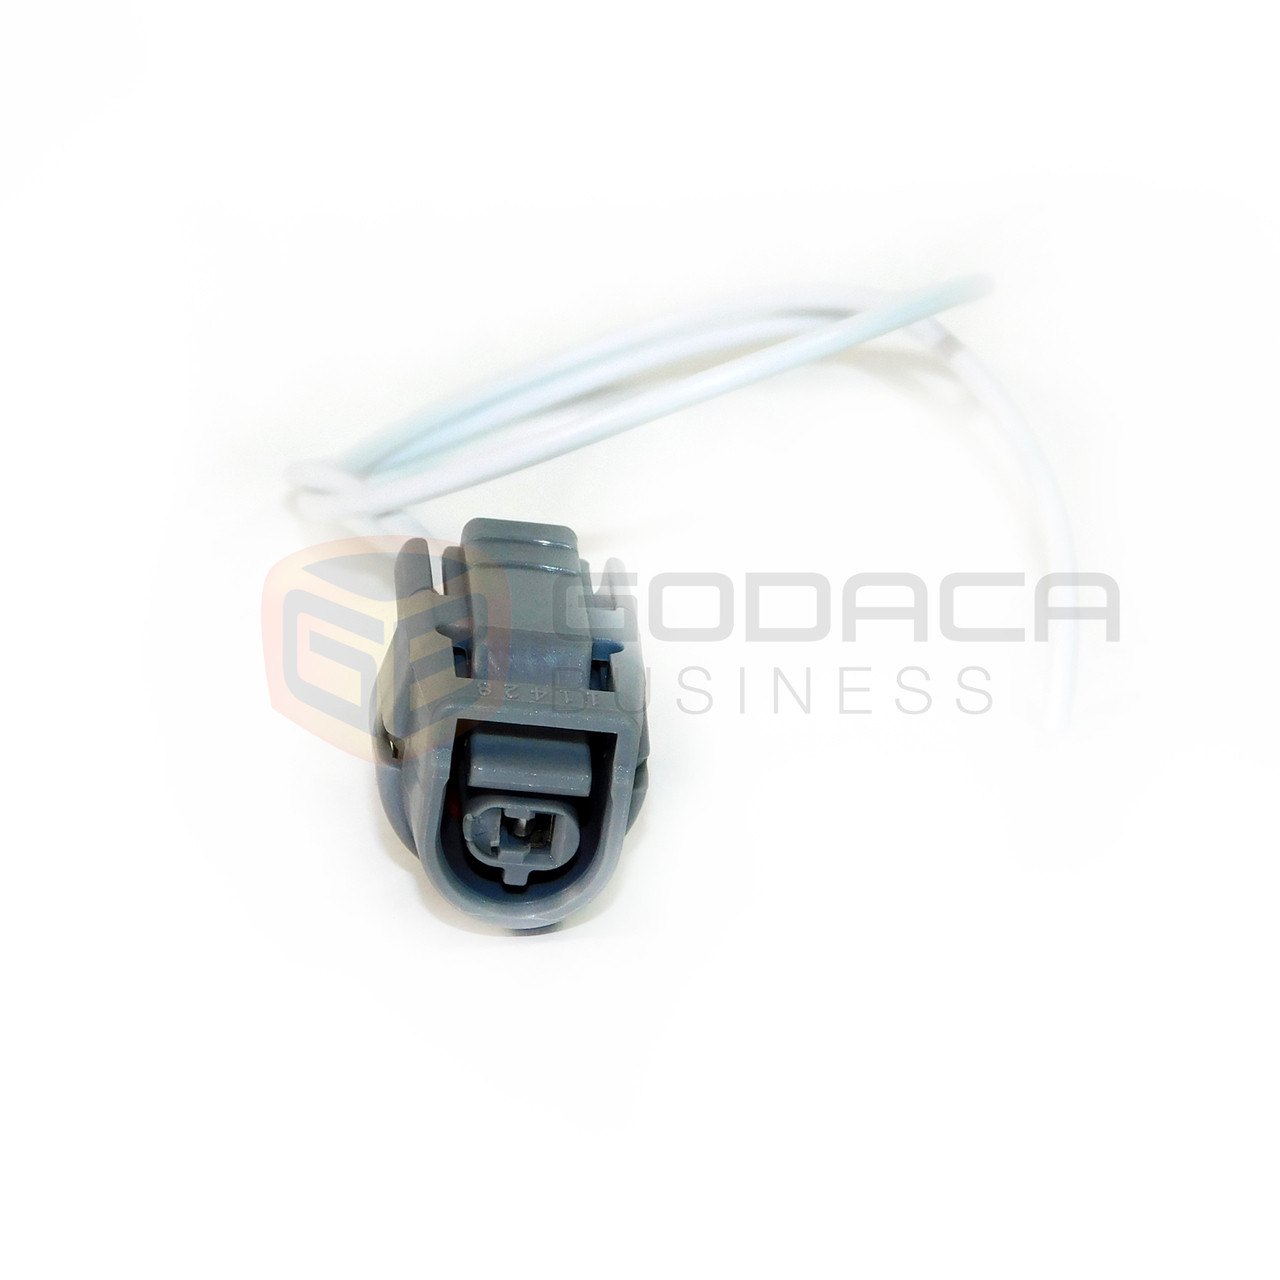 small resolution of 1x connector temperature sensor for toyota 2jz 90980 11428 with wire godaca llc